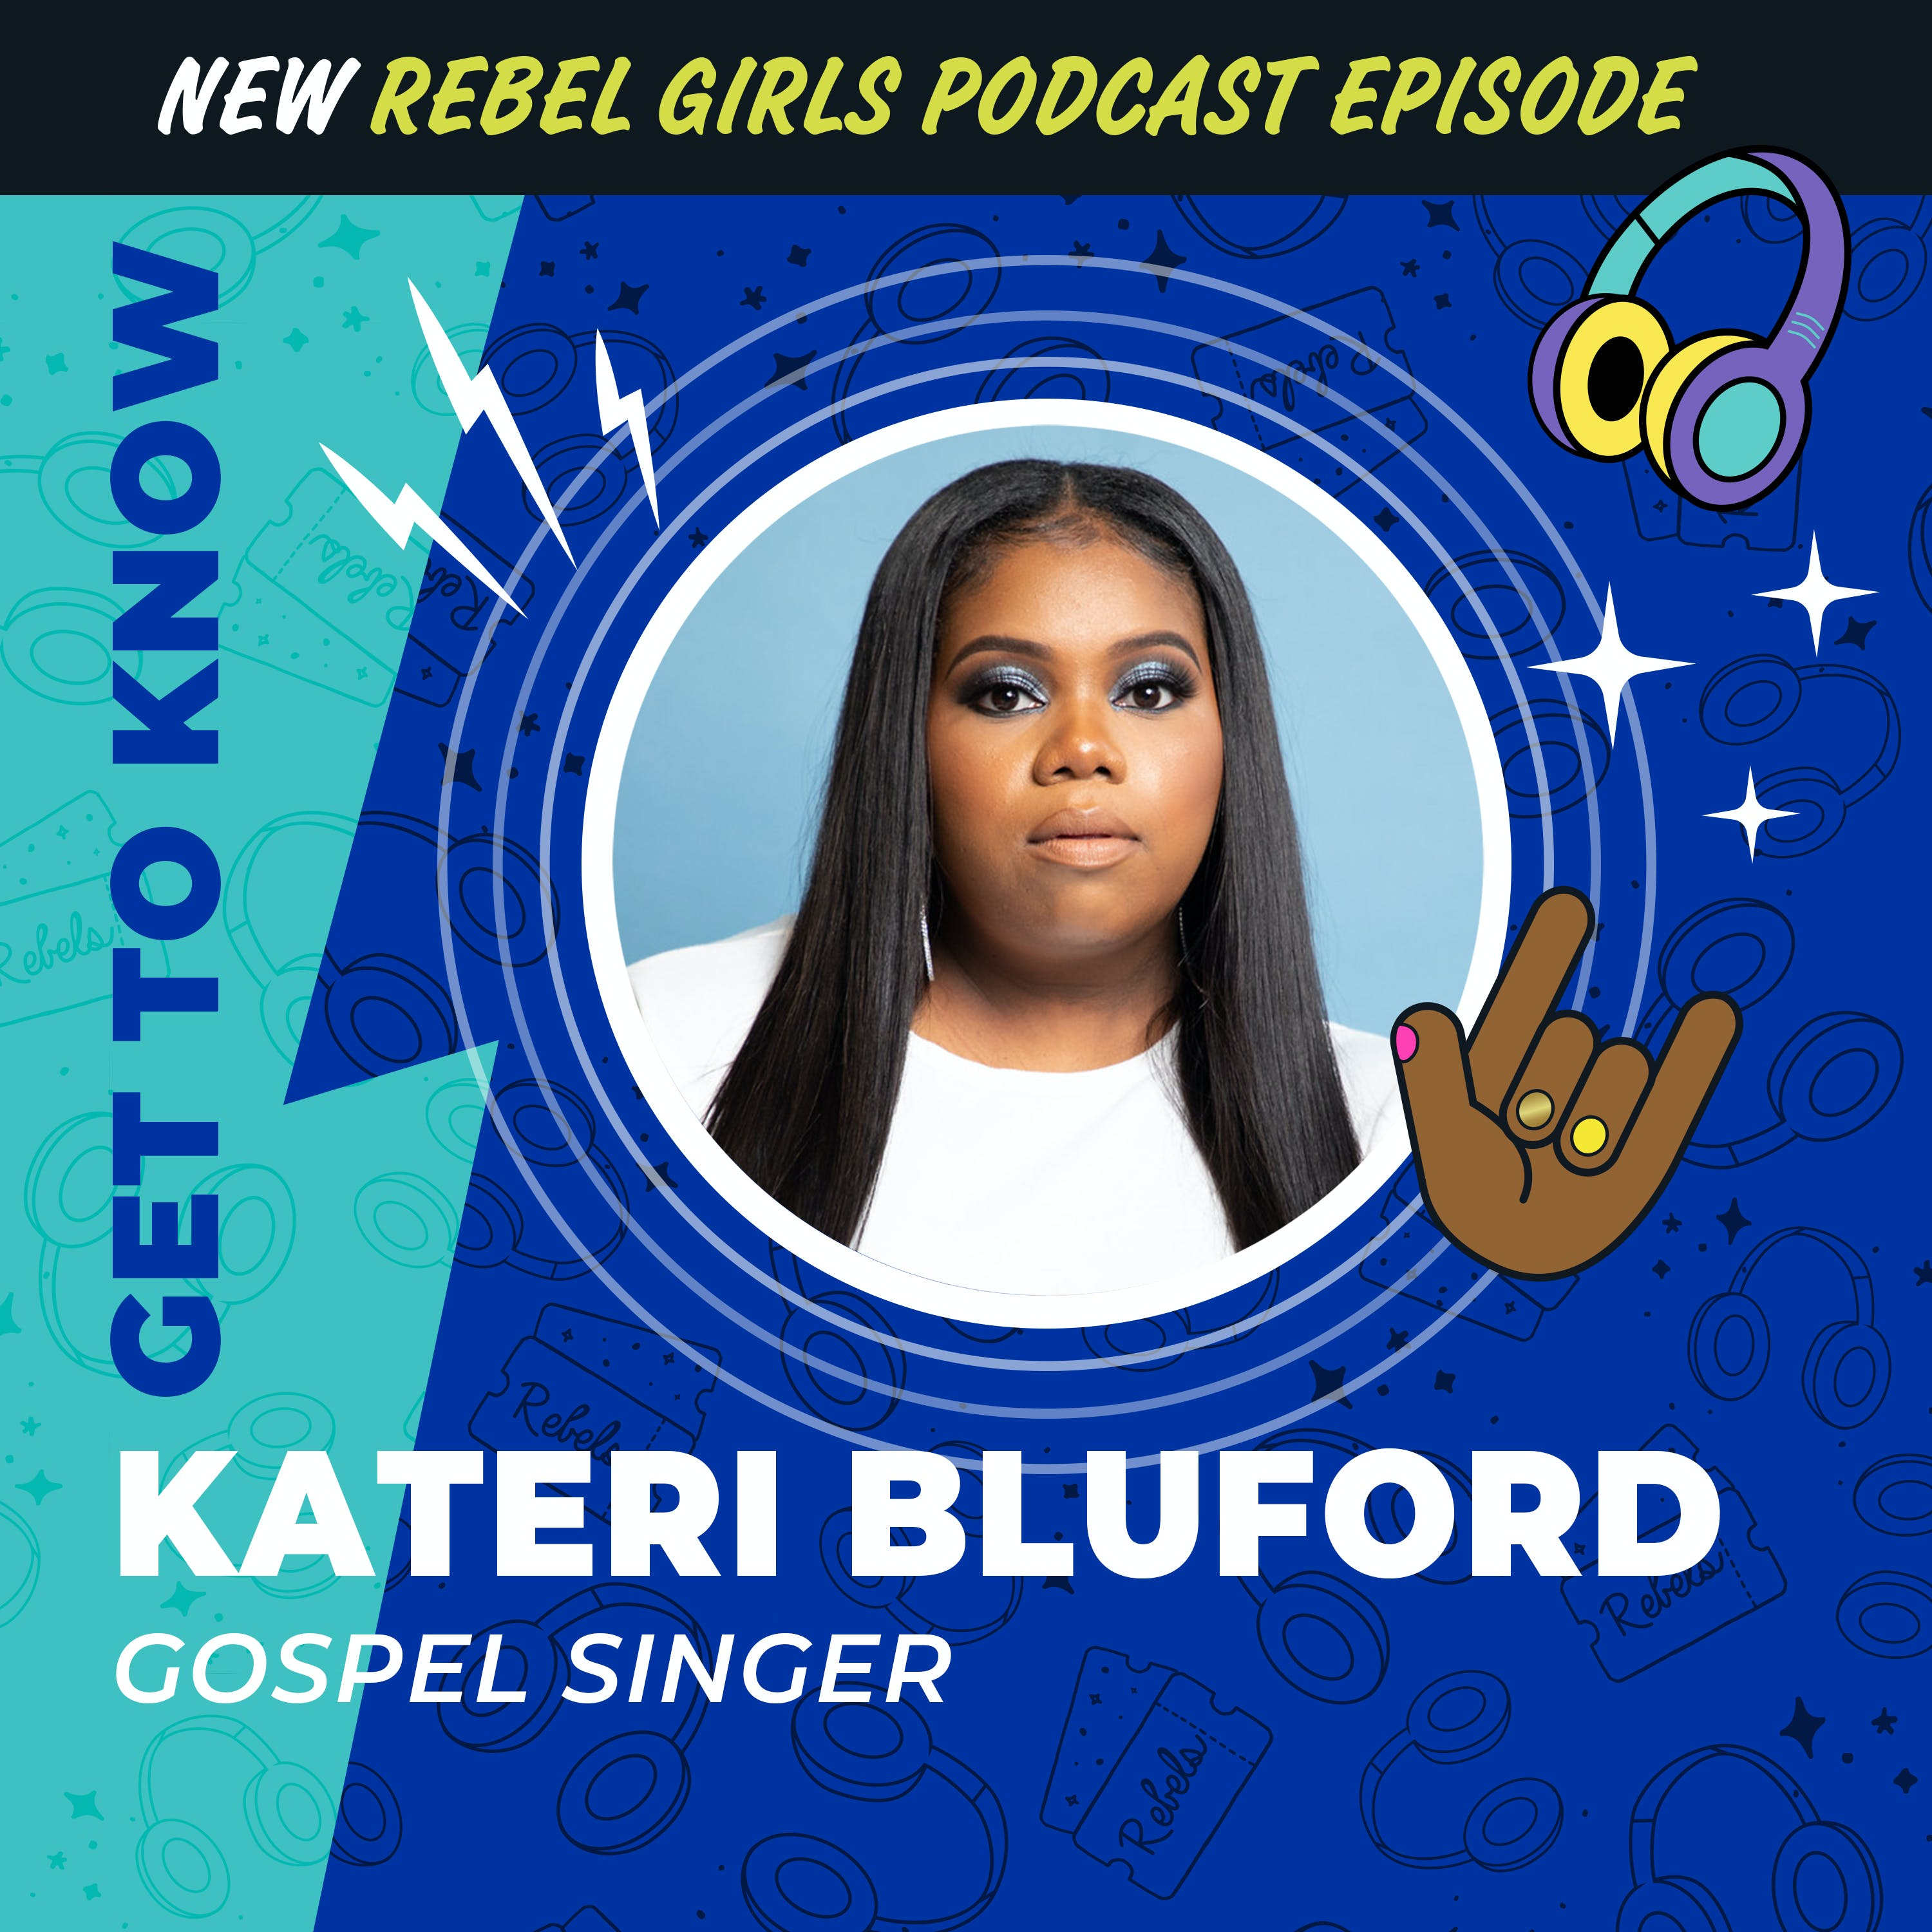 Get to Know Kateri Bluford